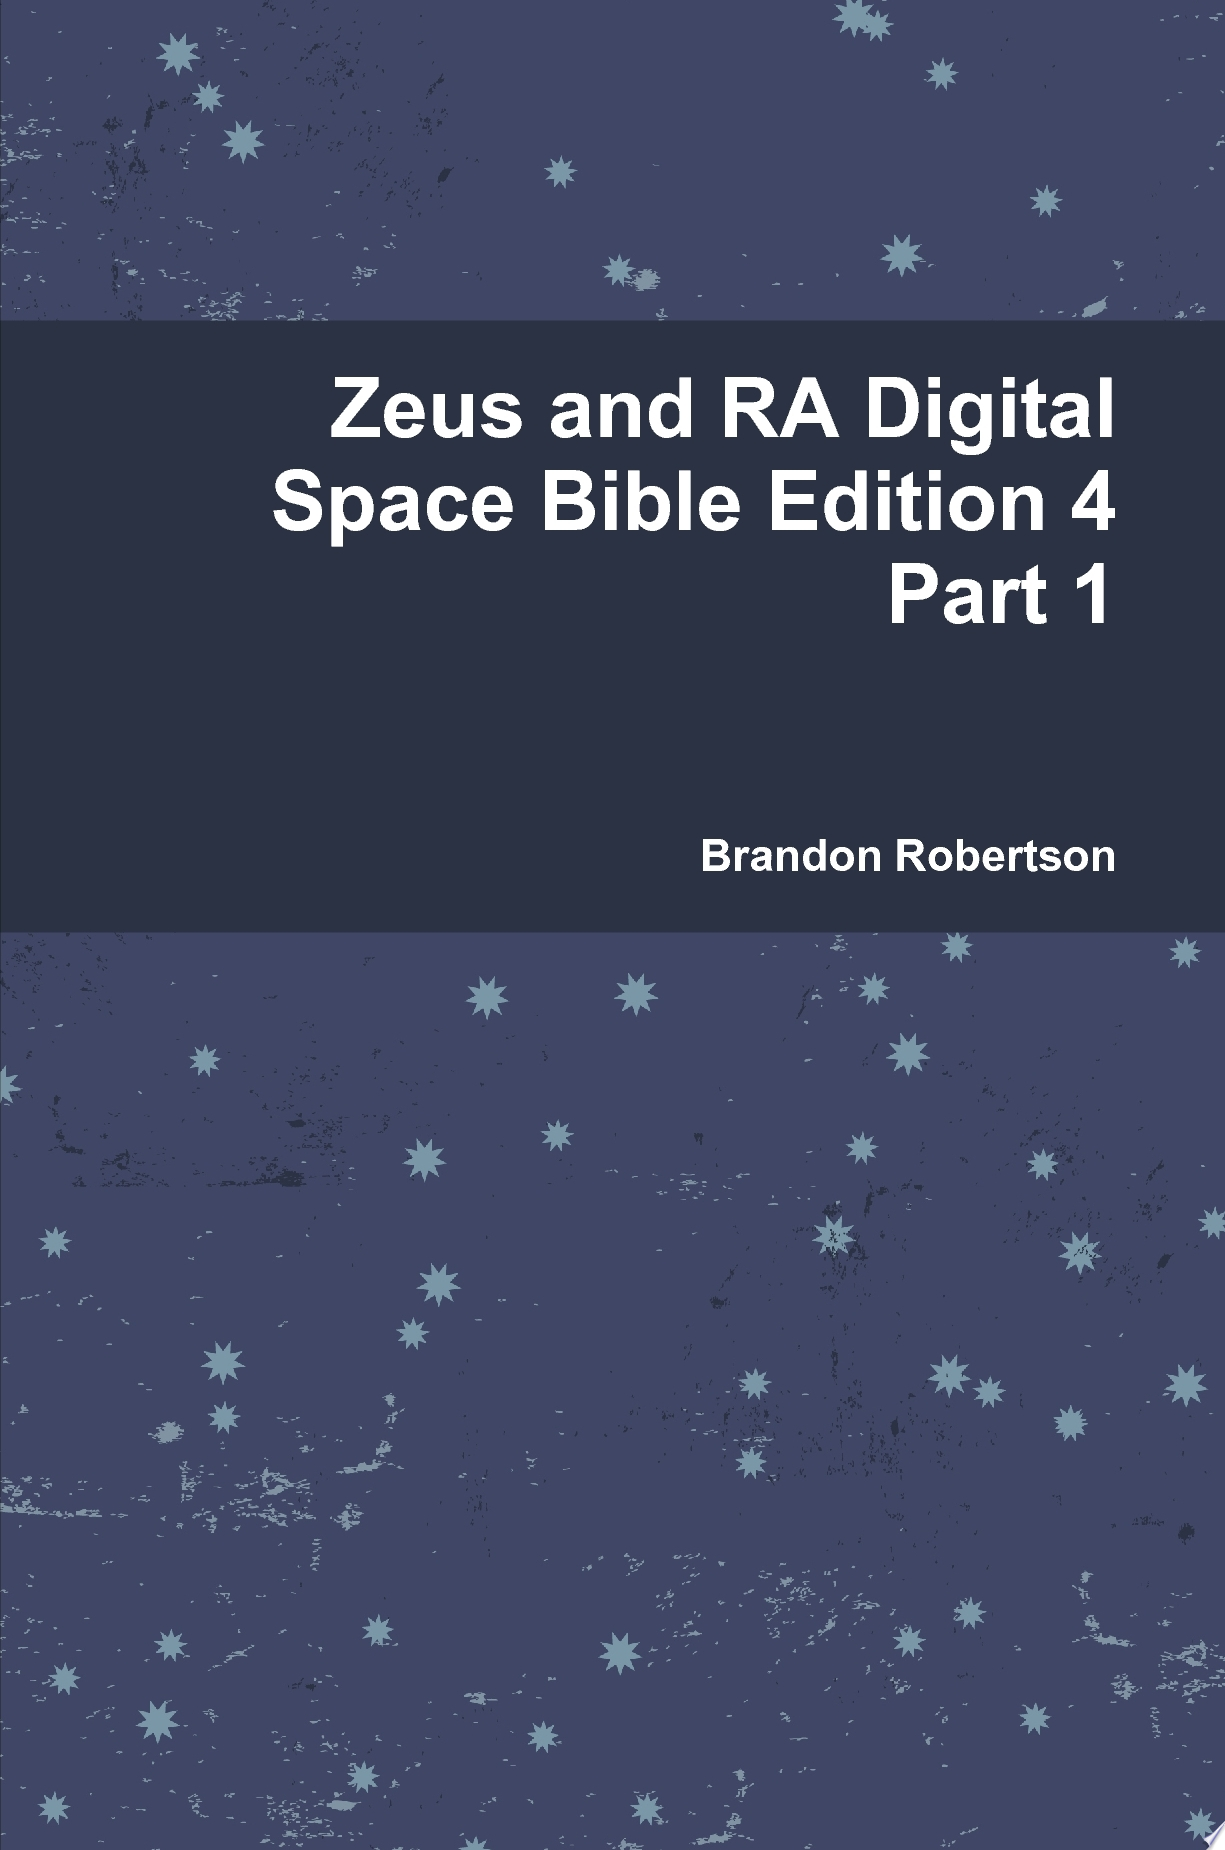 Zeus and RA Digital Space Bible Edition 4 Part 1